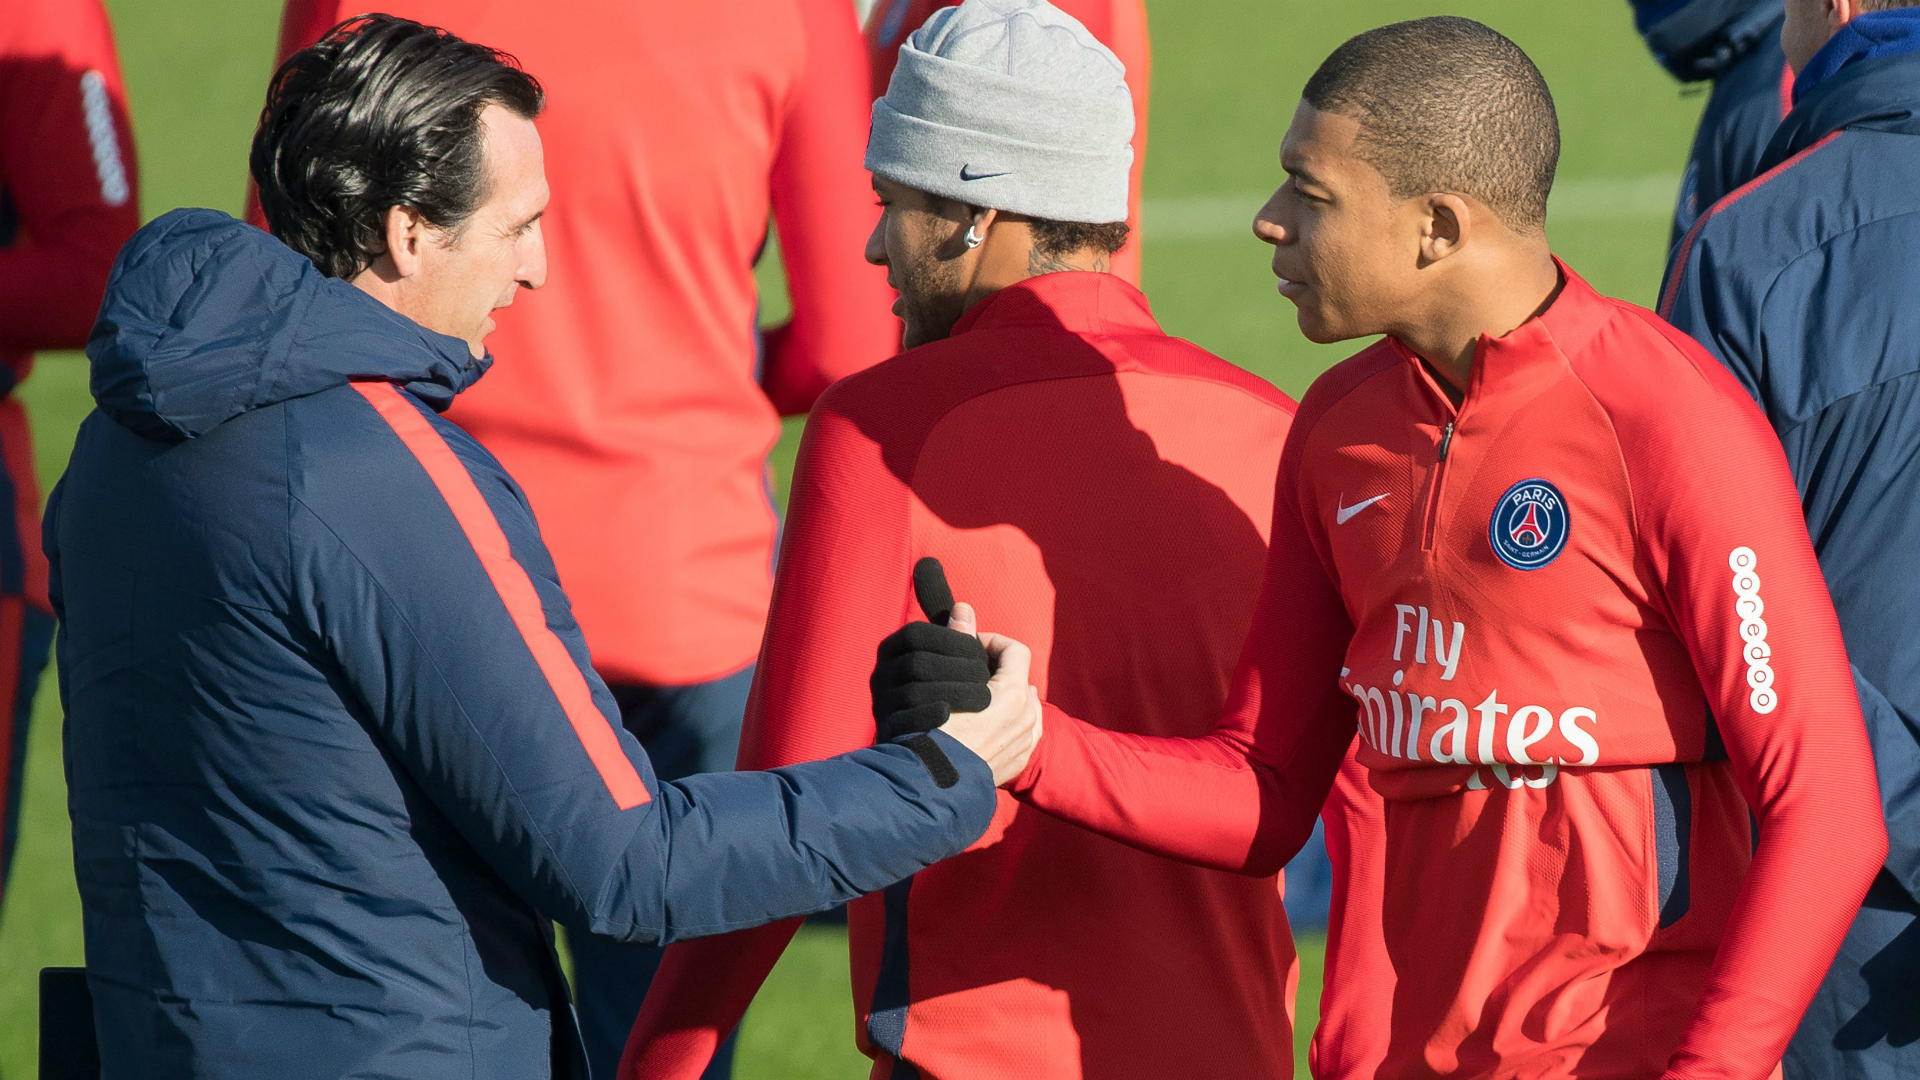 Unai Emery revealed the desire Kylian Mbappe had to join Real Madrid during his team at Paris Saint-Germain.